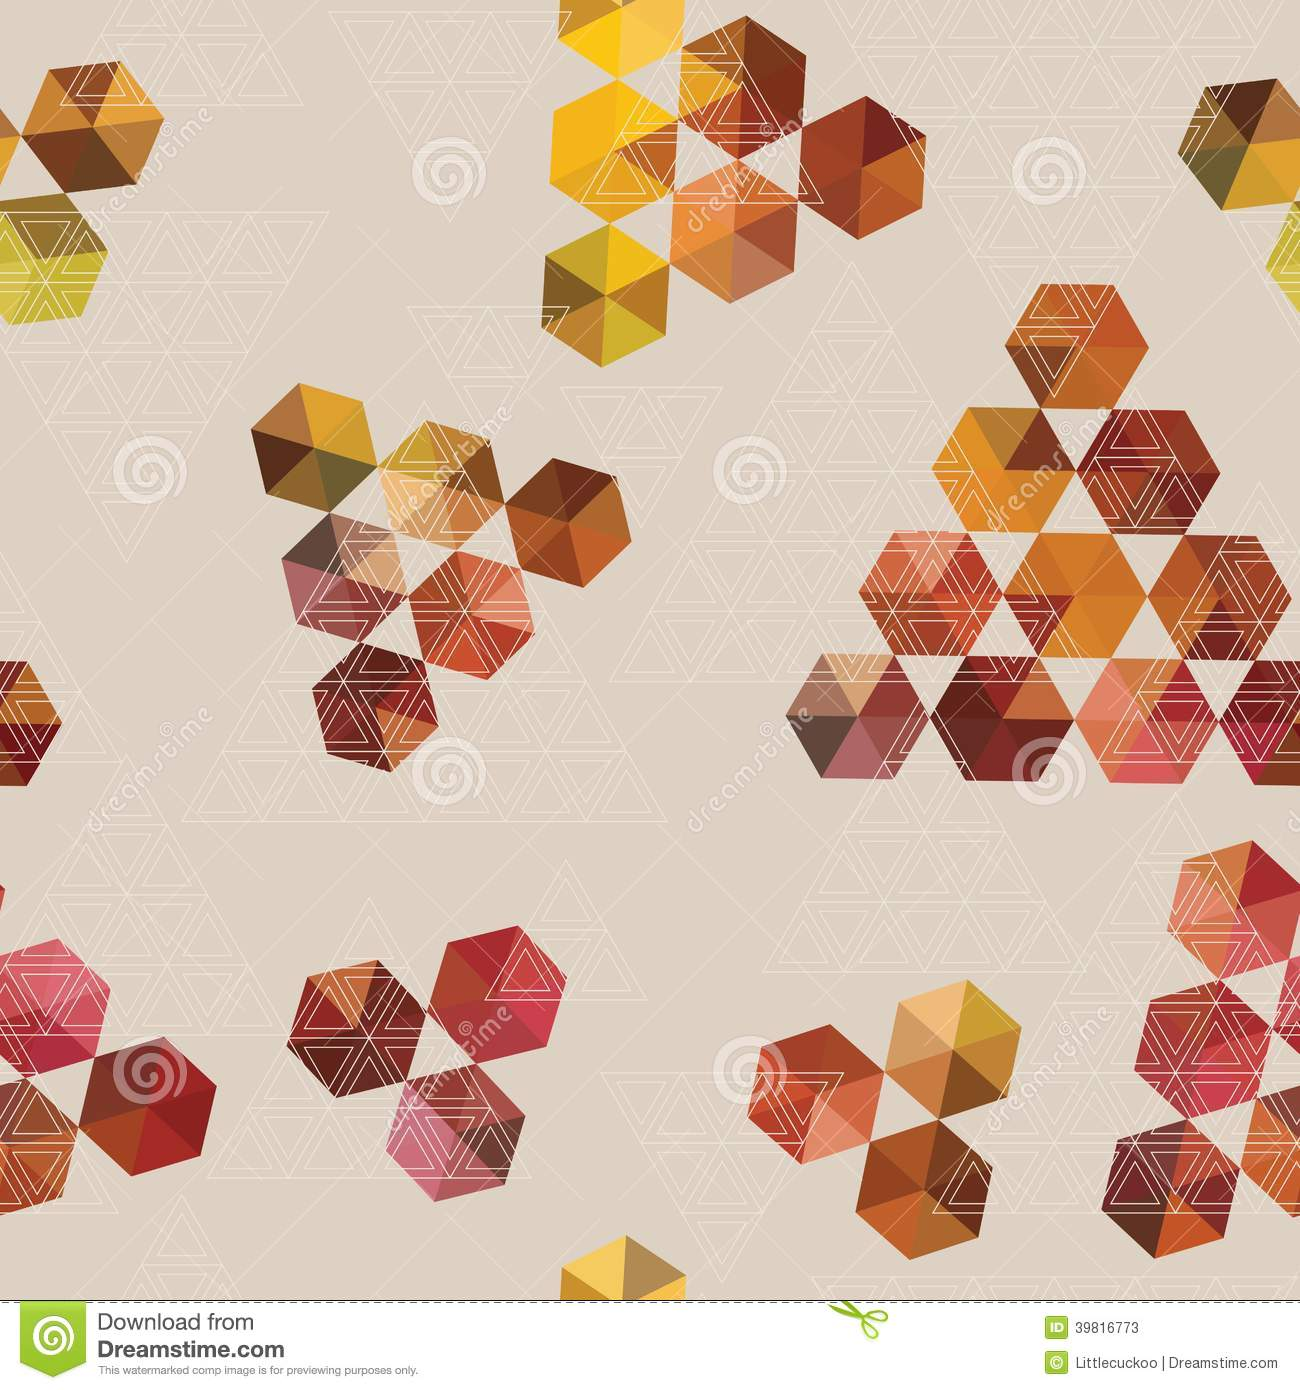 Geometric Pattern Of Hexagons And Triangles Stock Vector